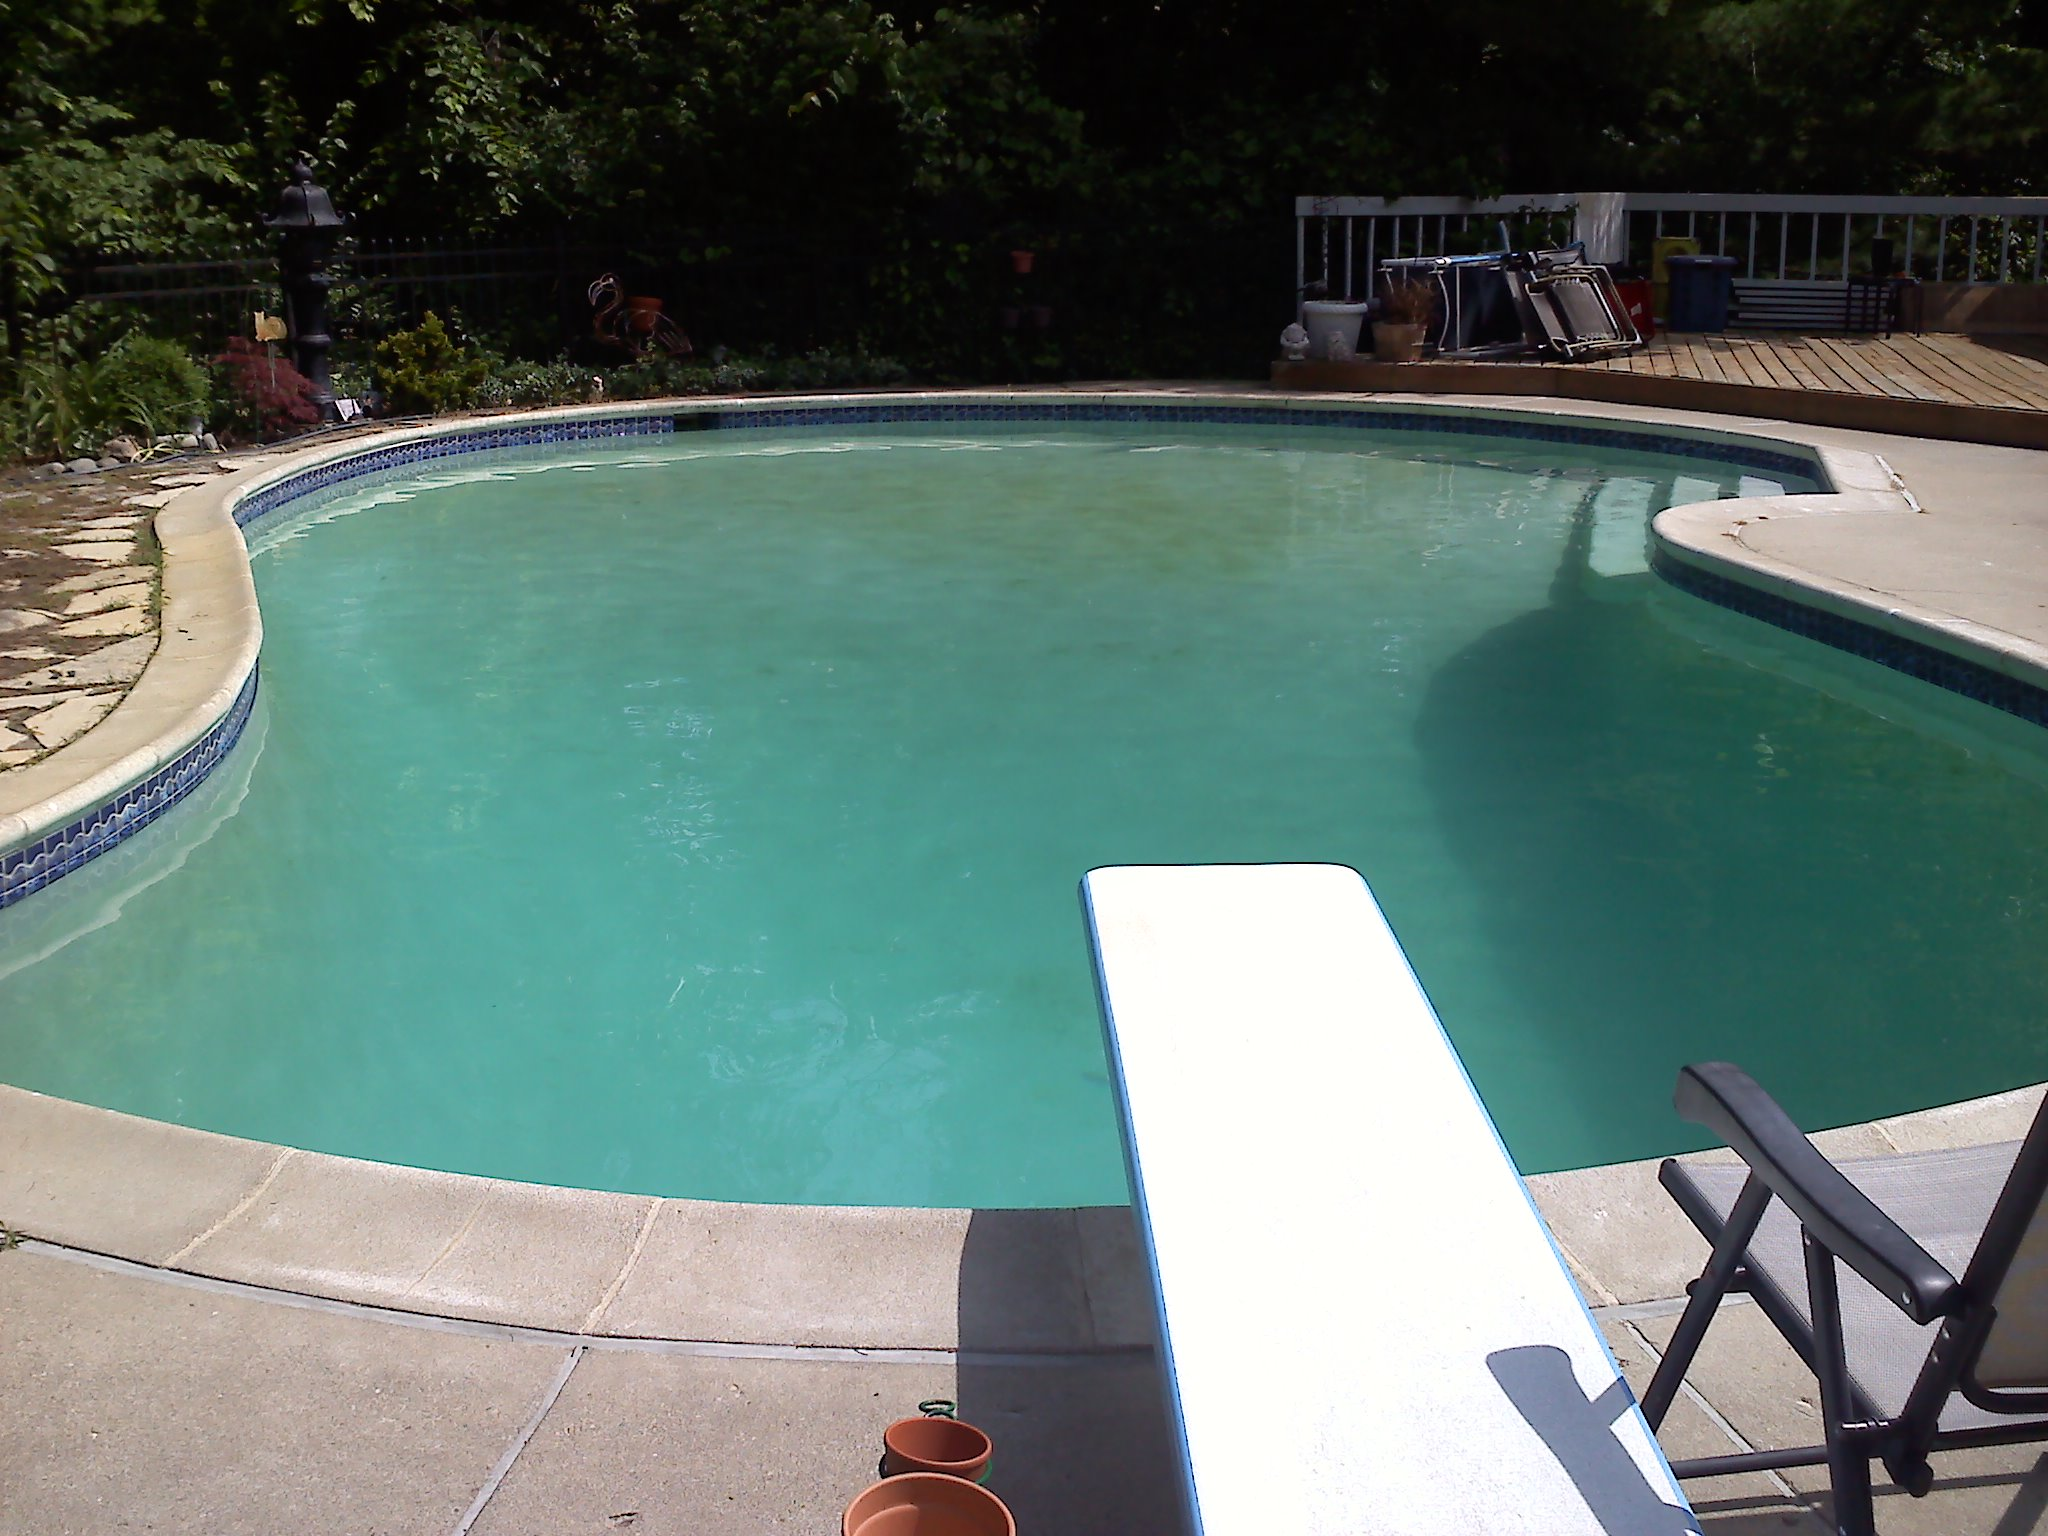 Swimming Pool Algae Problem : Legendary escapes ask the pool guy about an algae problem